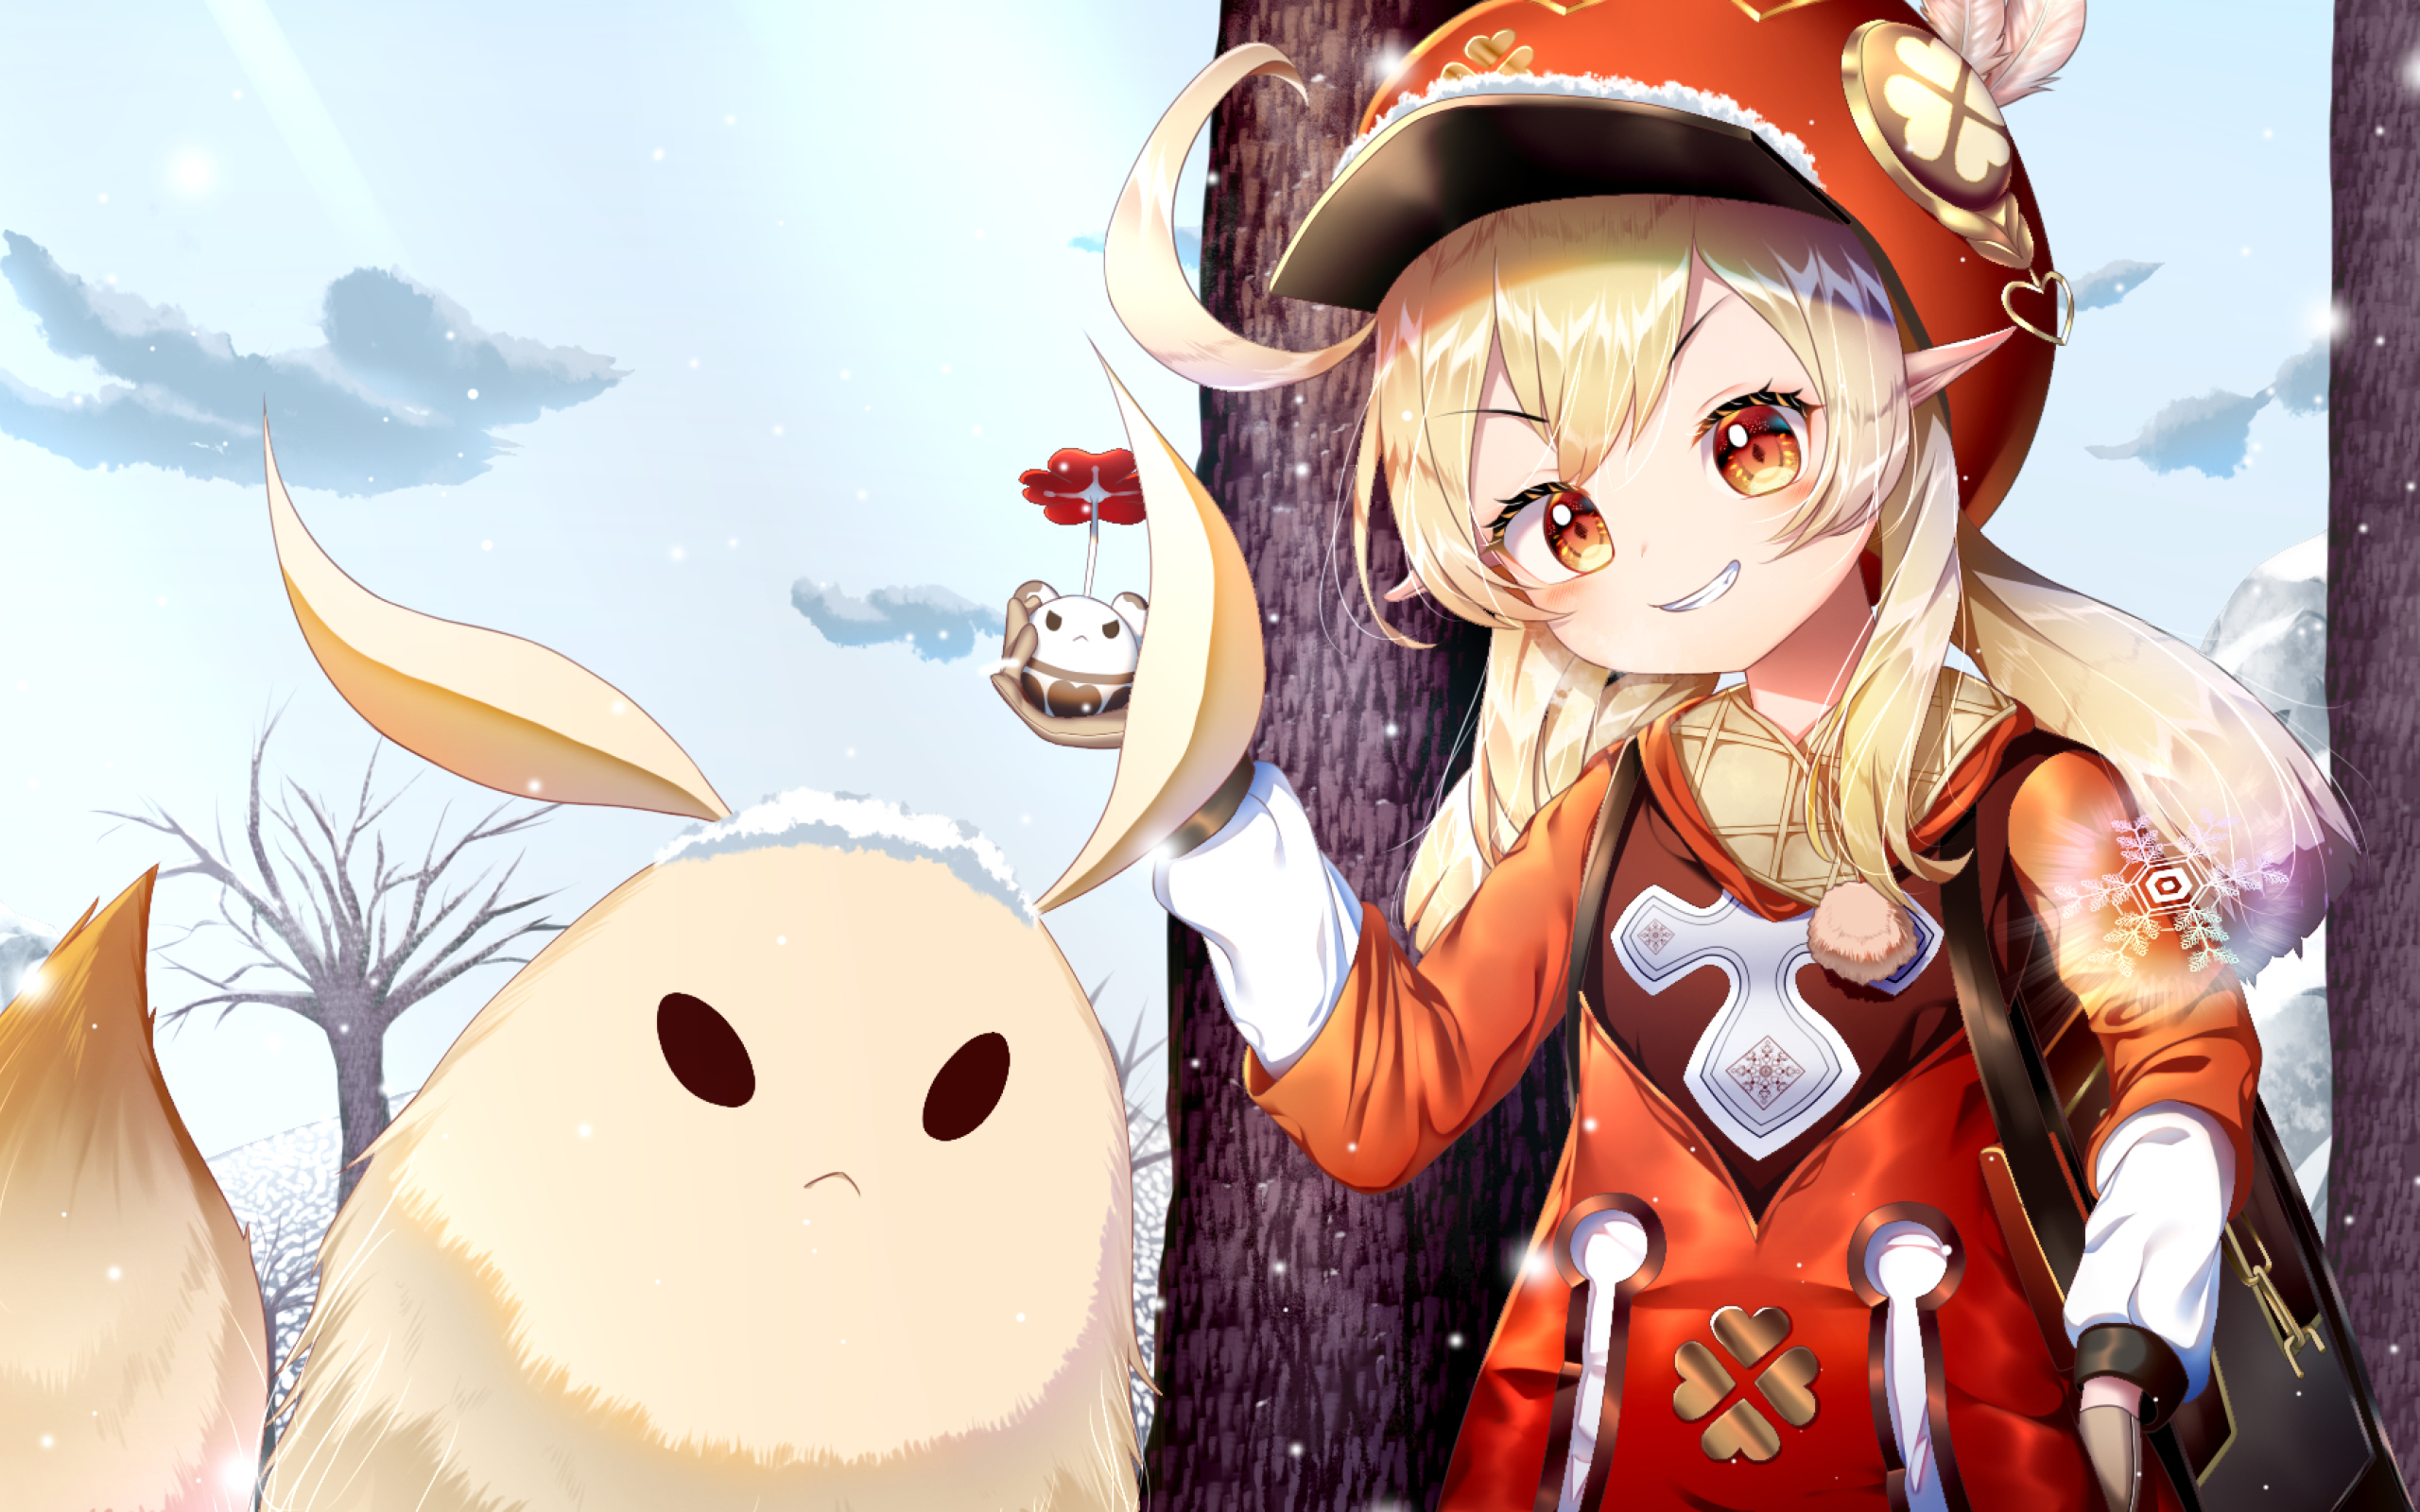 Klee Genshin Impact and her Pet Wallpaper in 2560x1600 Resolution